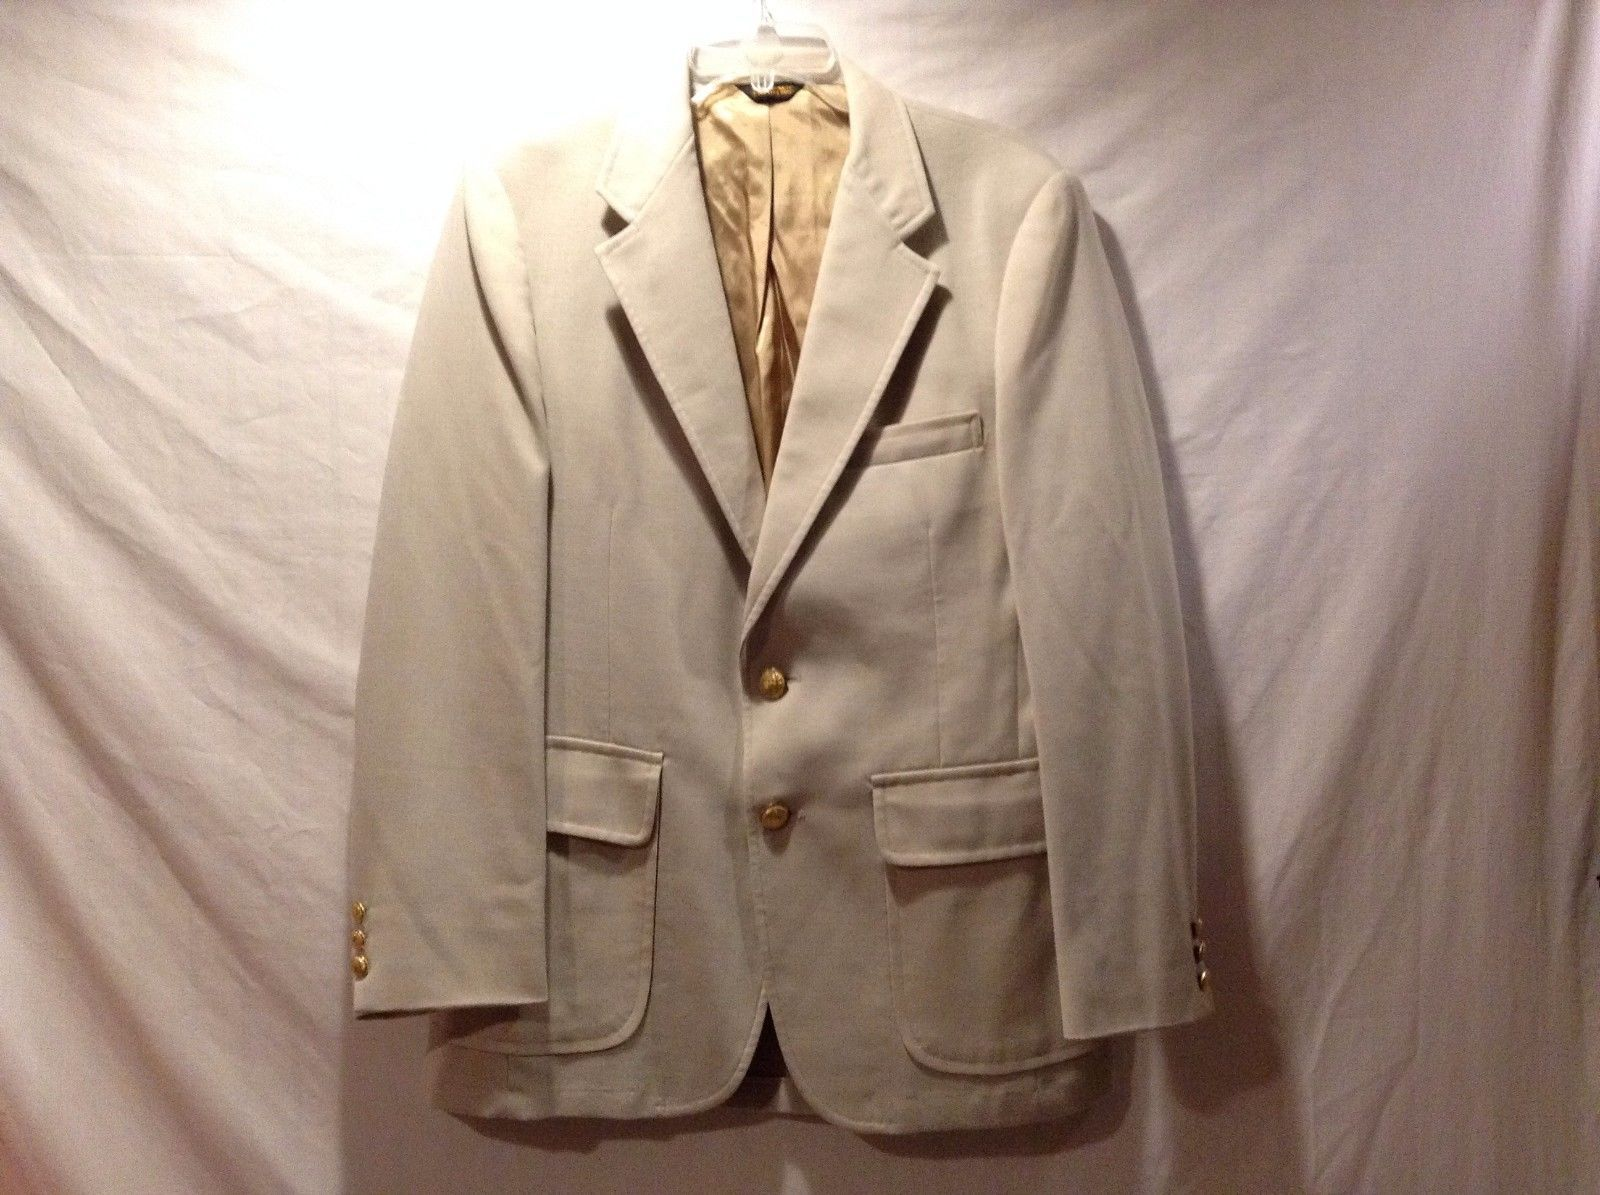 Great Condition Asher Tan Suit Jacket 2 Inside Pockets Brass Inner Lining